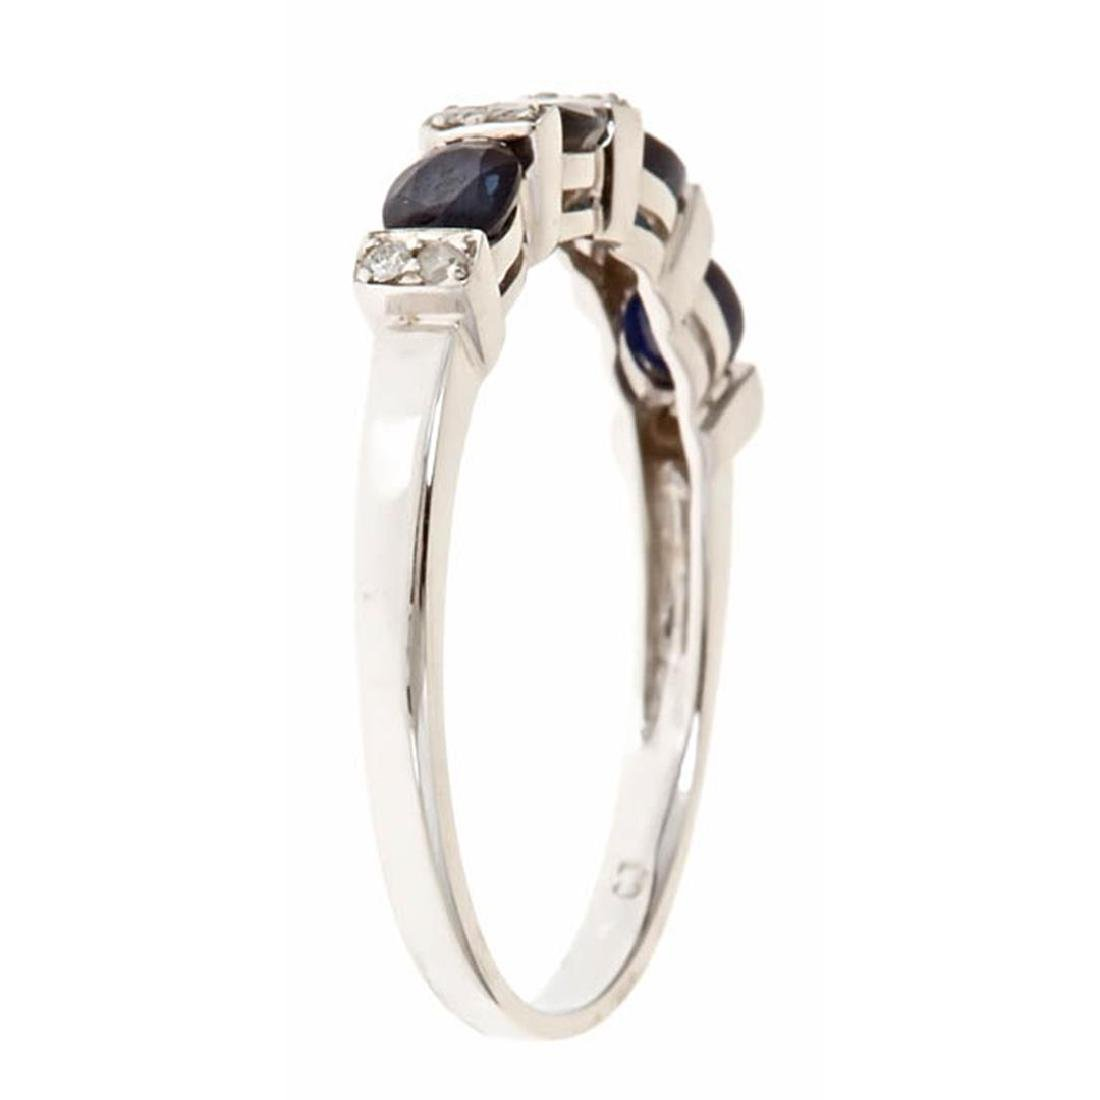 1.02 ctw Sapphire and Diamond Ring - 14KT White Gold - 2